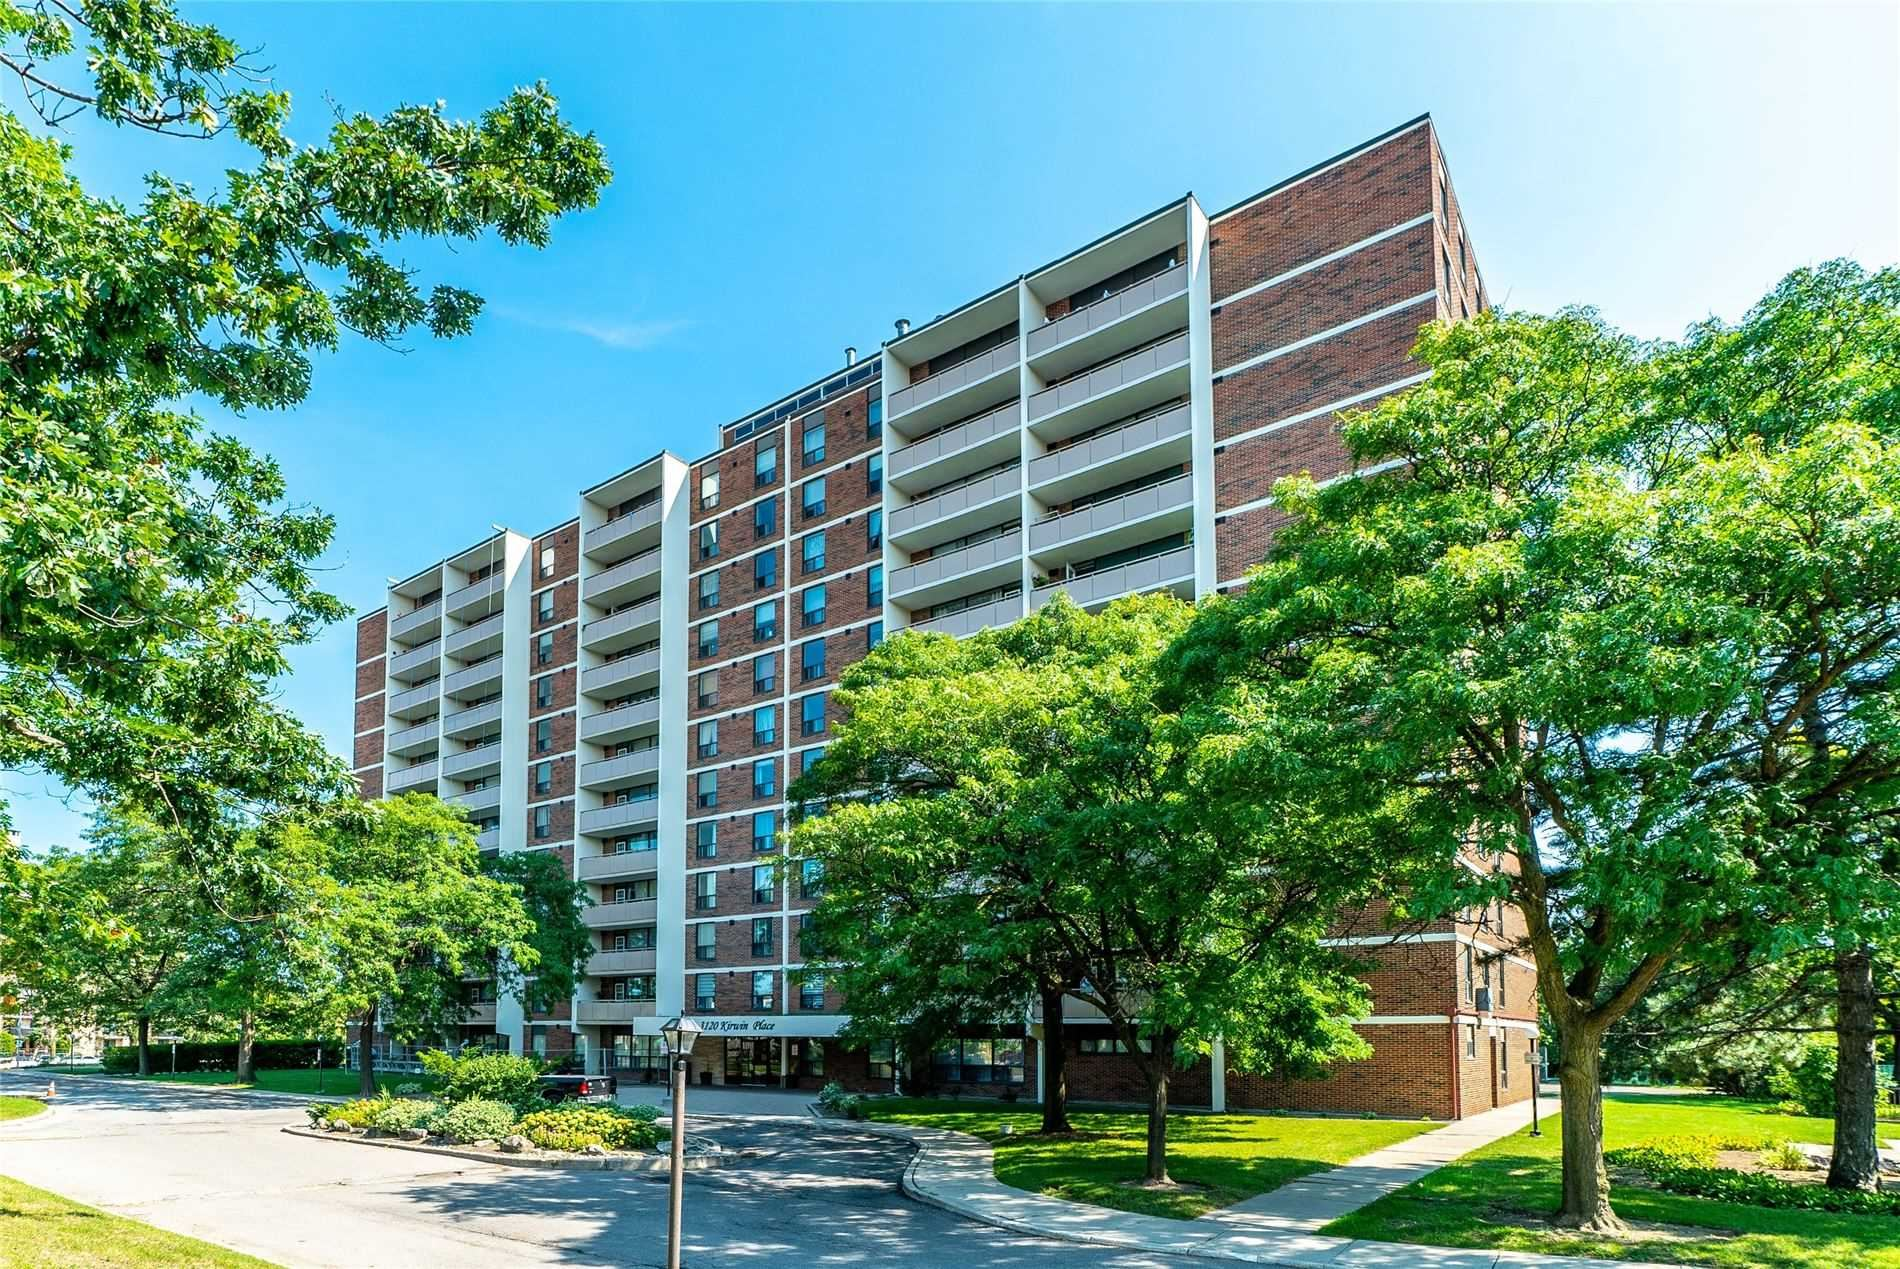 3120 Kirwin Ave #203, Mississauga, ON L5A3R2 - MLS#: W5370487